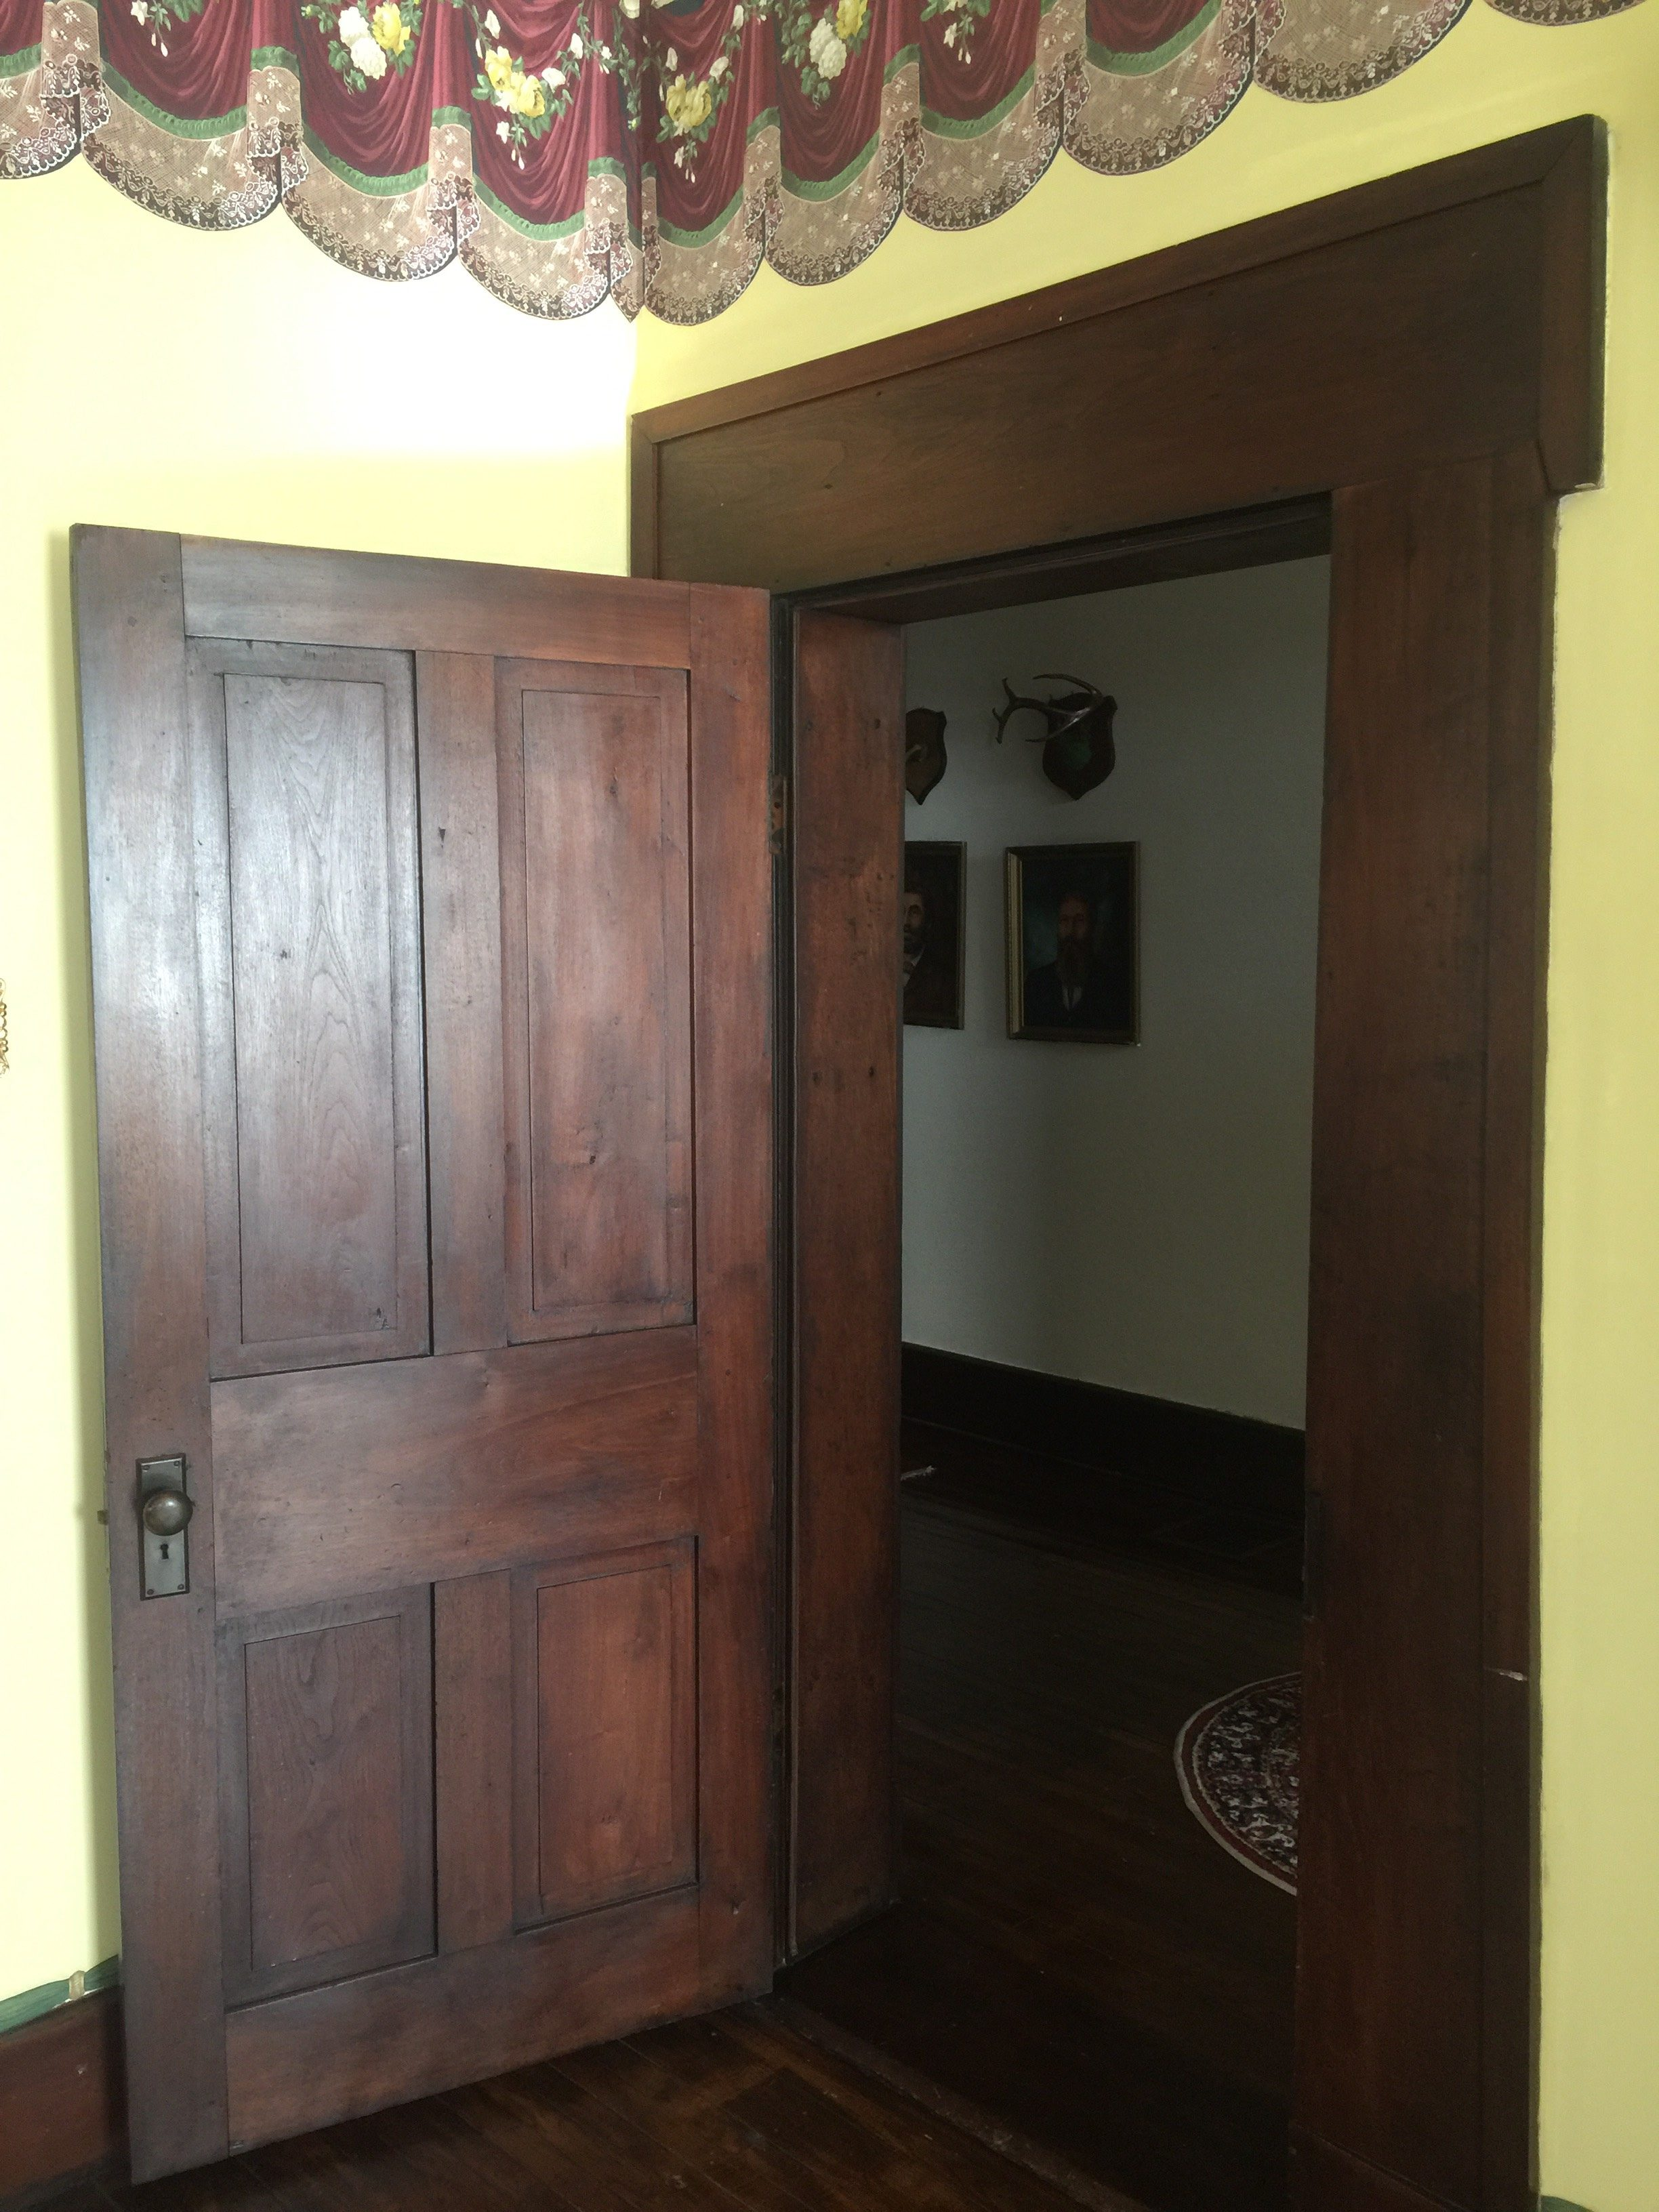 Black walnut wood trim. The wood is original to the house and the property!